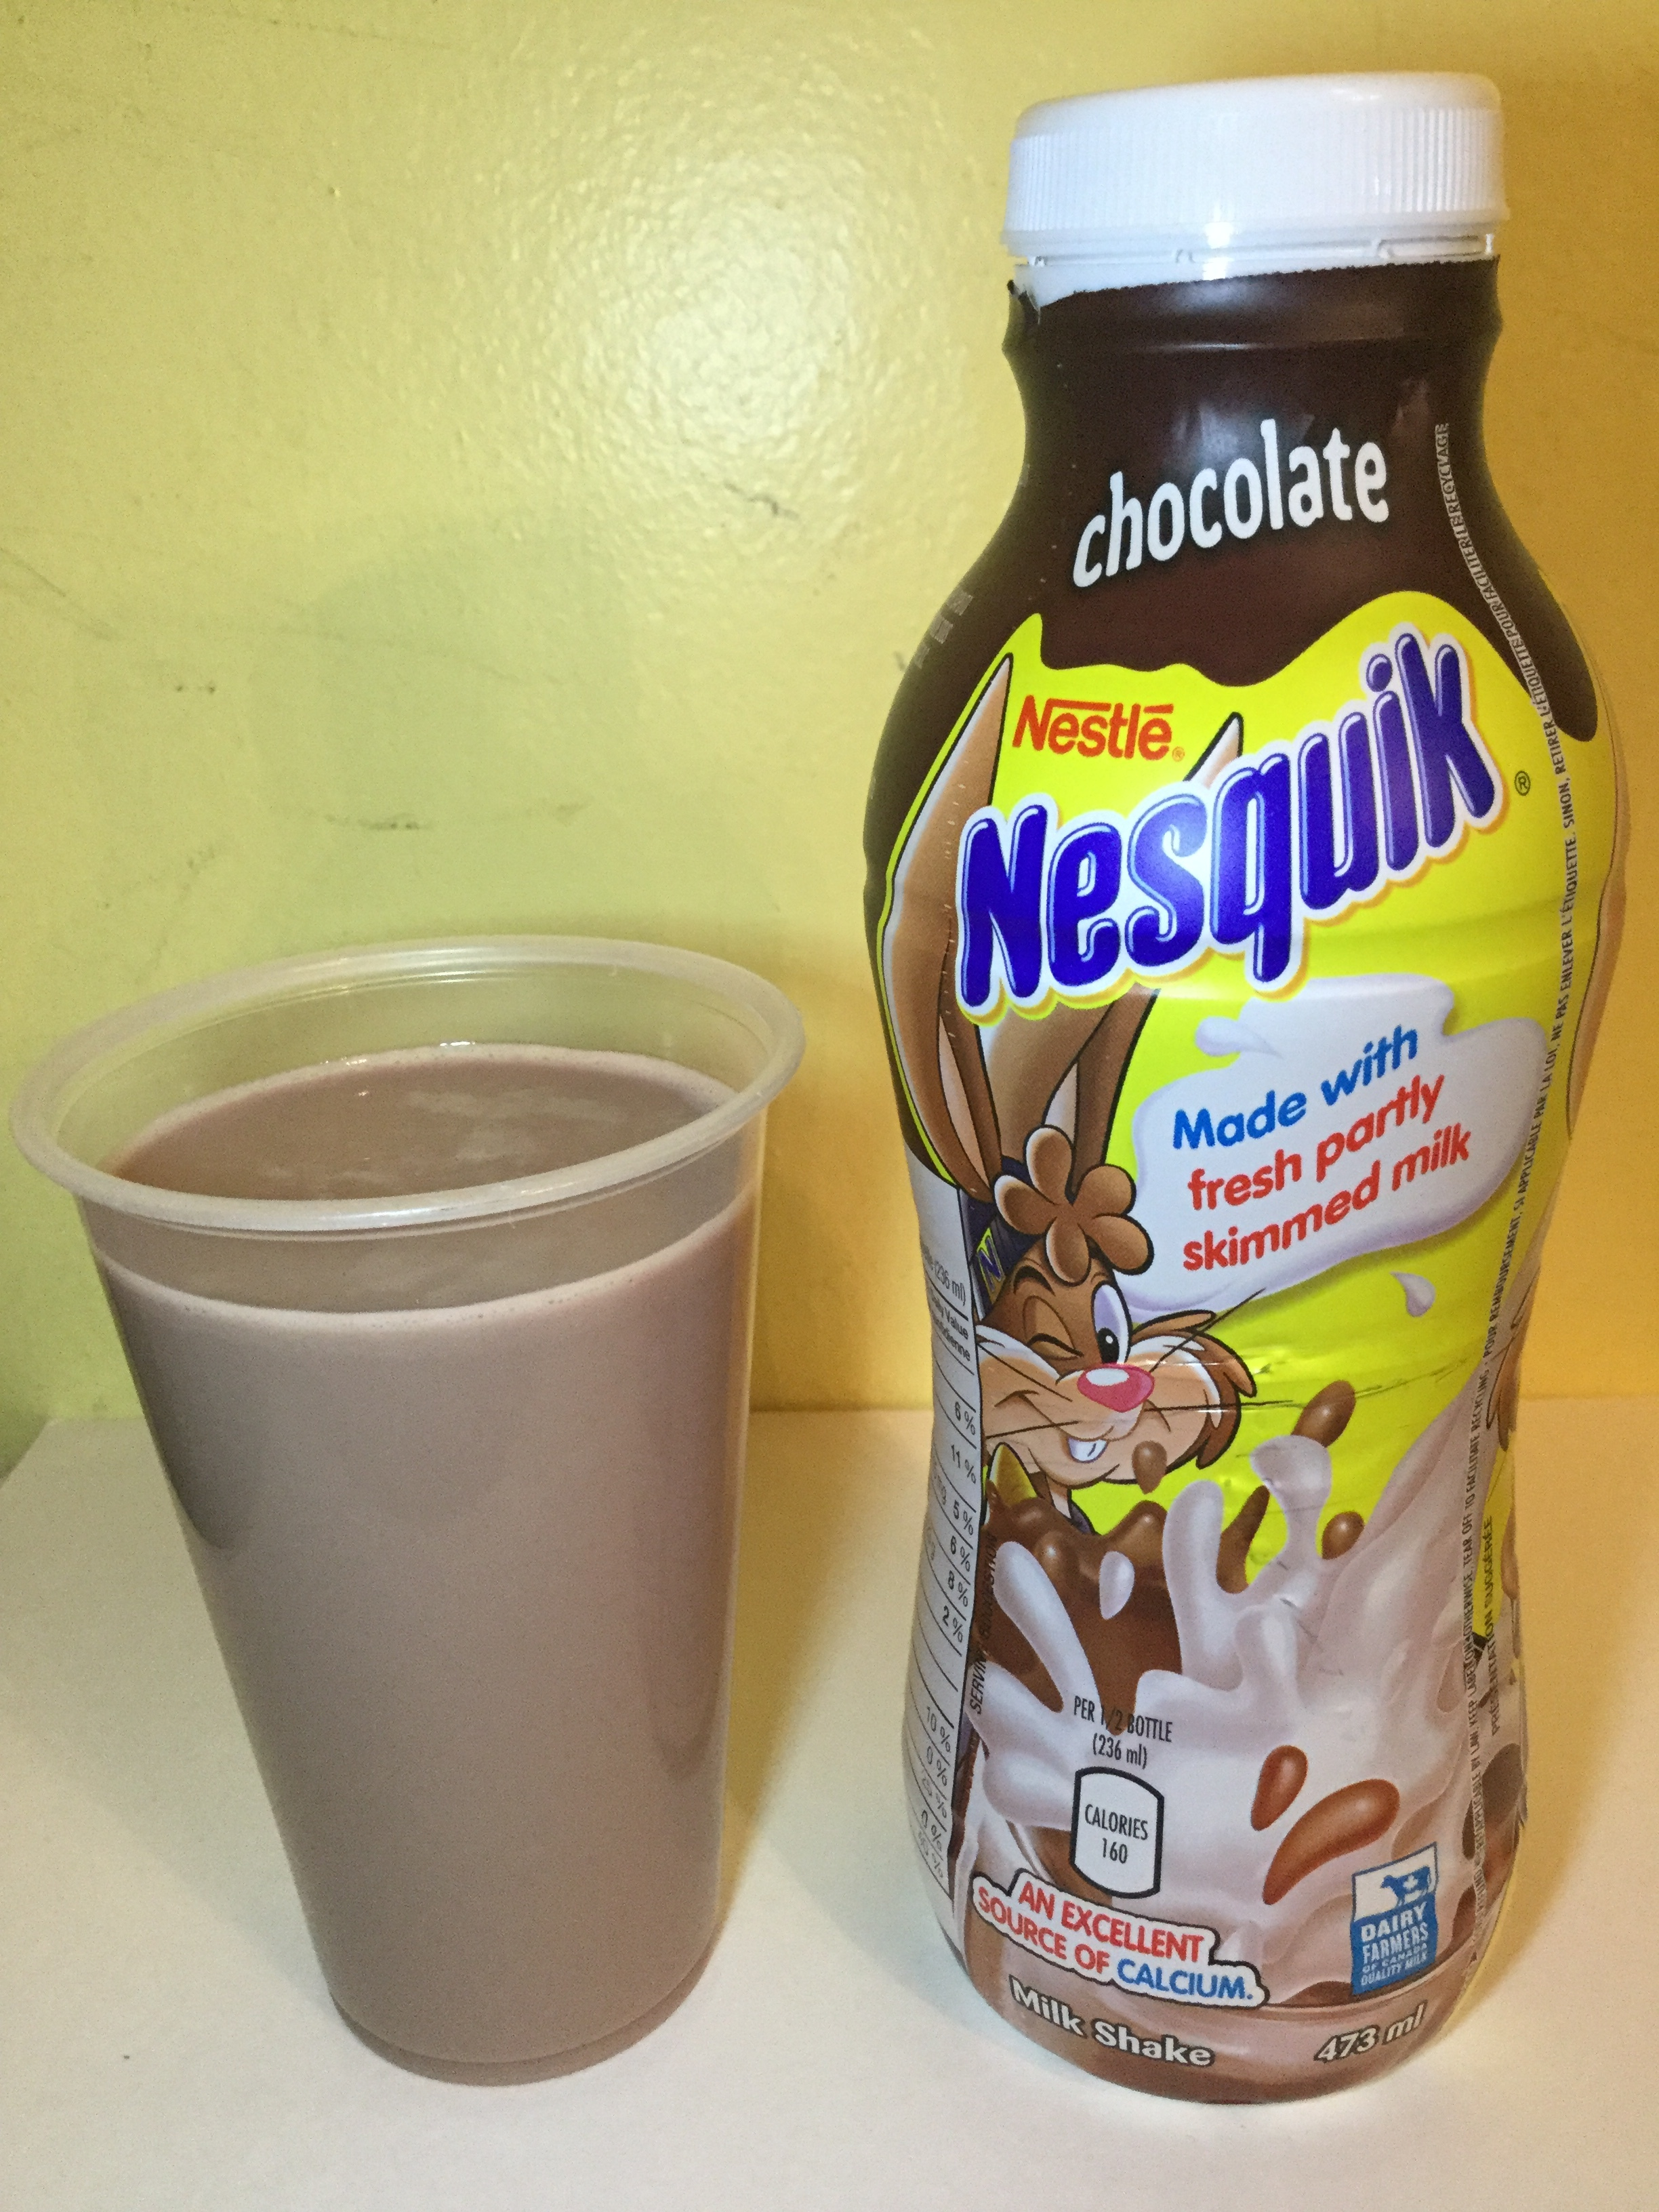 Nestle Nesquik Chocolate Milk Cup